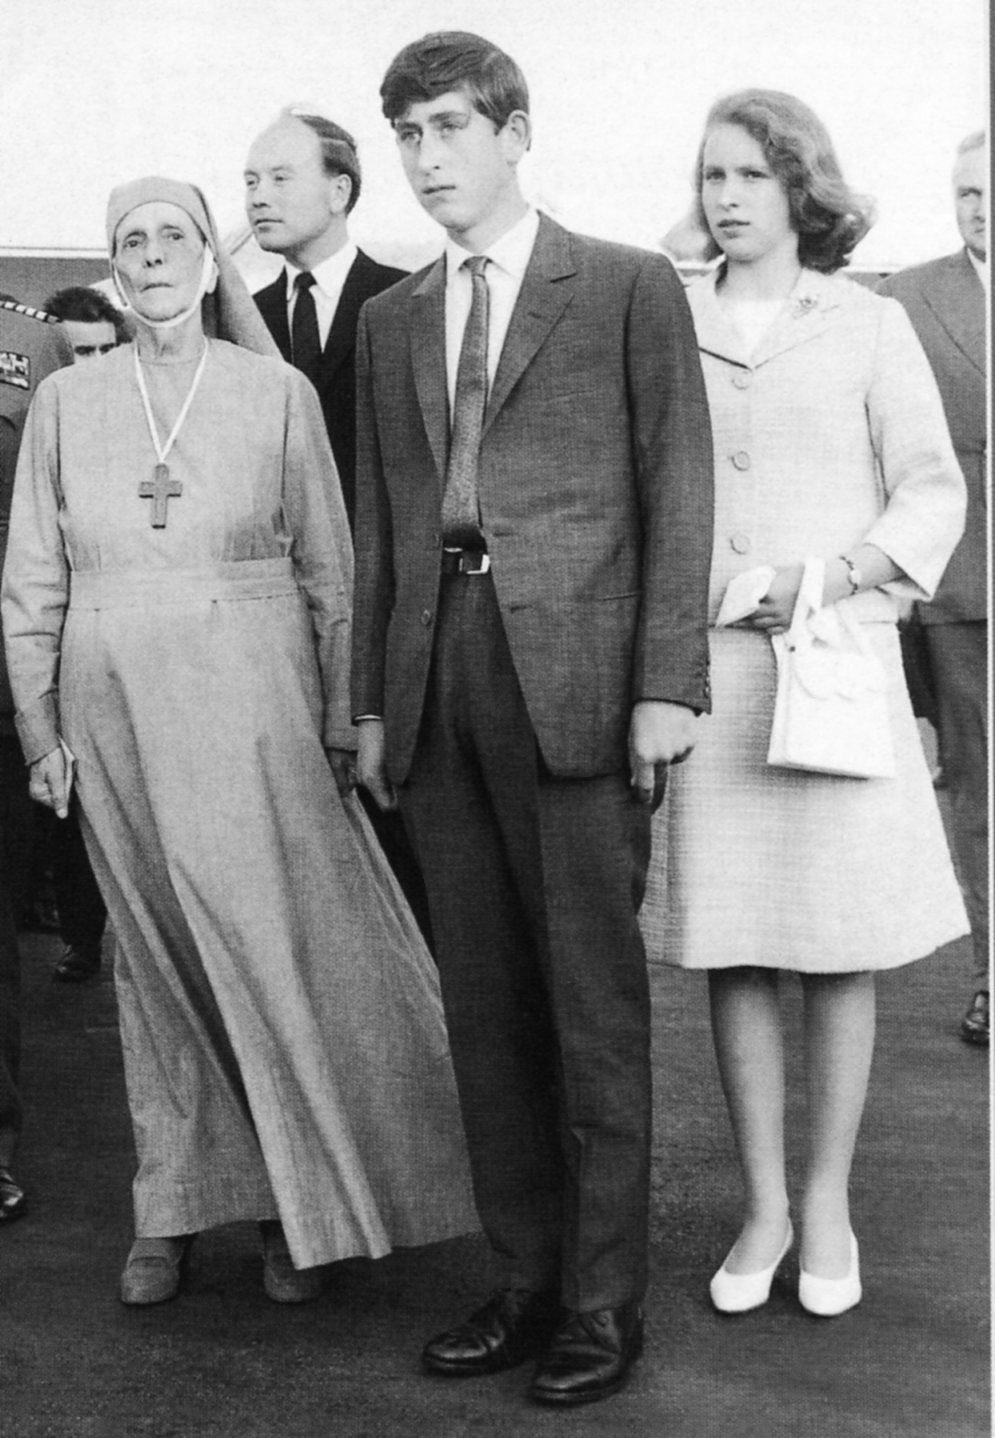 misshonoriaglossop via wgabry: Prince Charles and Princess Anne with their  Grandmother Princess Alice … | English royal family, Royal family england, Princess  alice